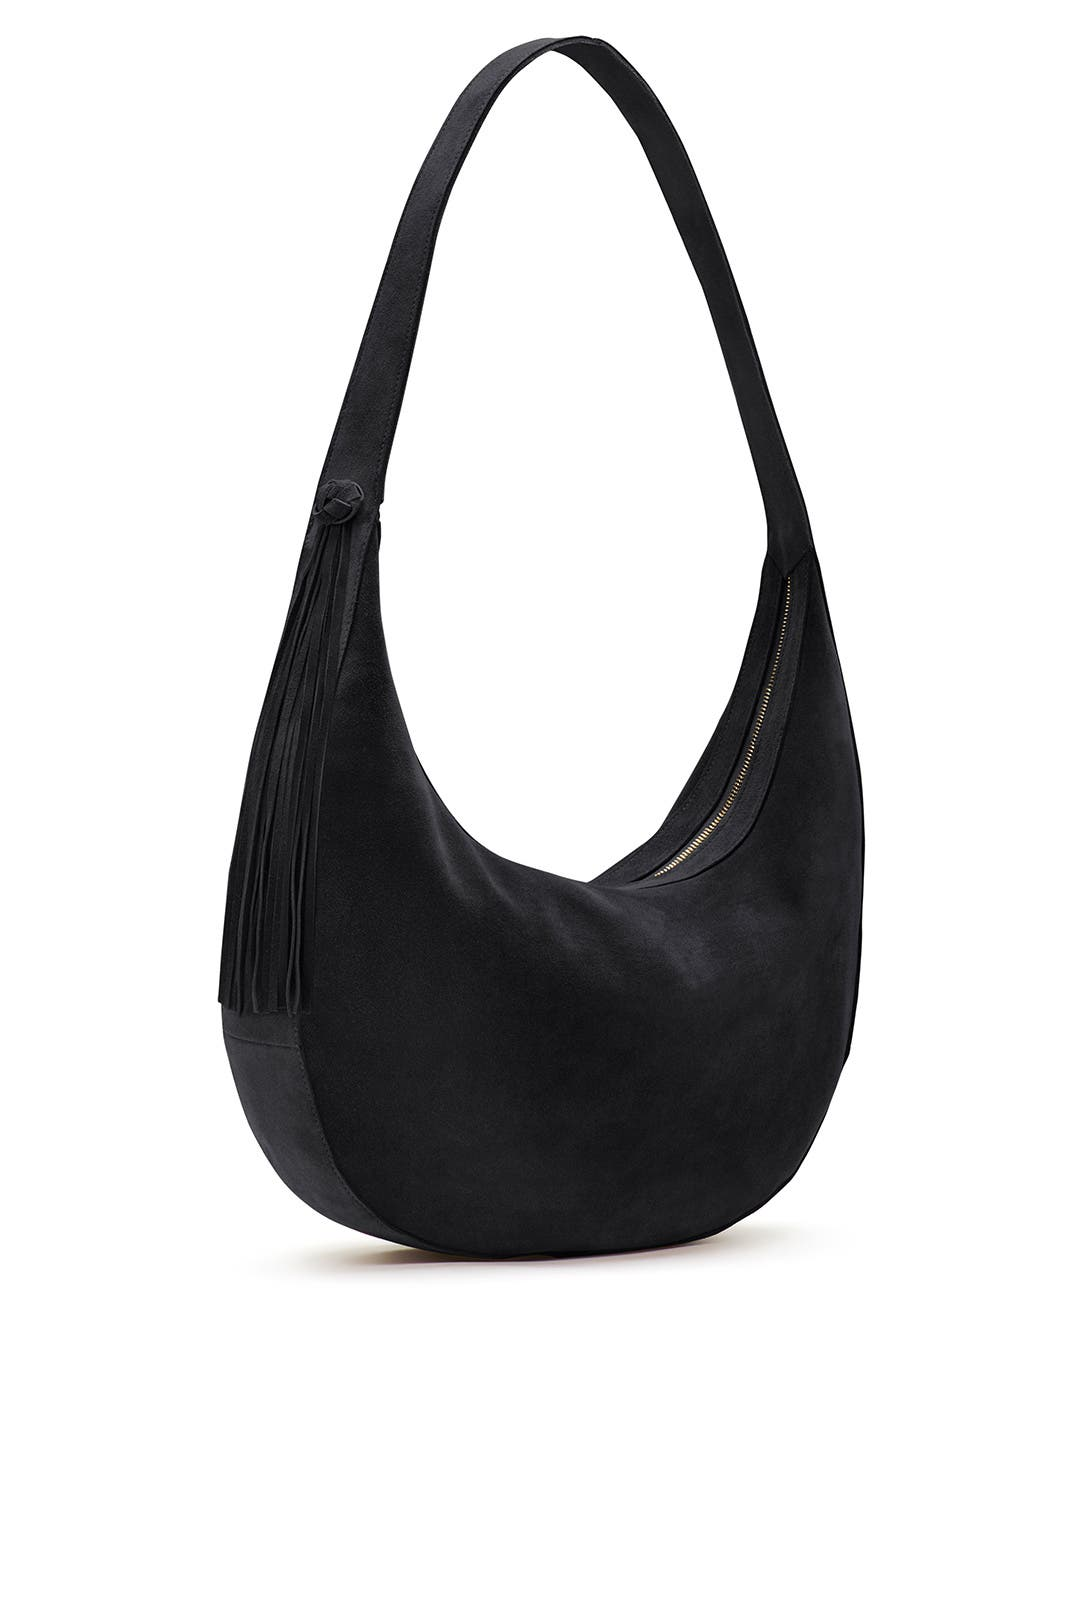 05350bd981 Black Suede Zoe Hobo by Elizabeth and James Accessories for  111 ...